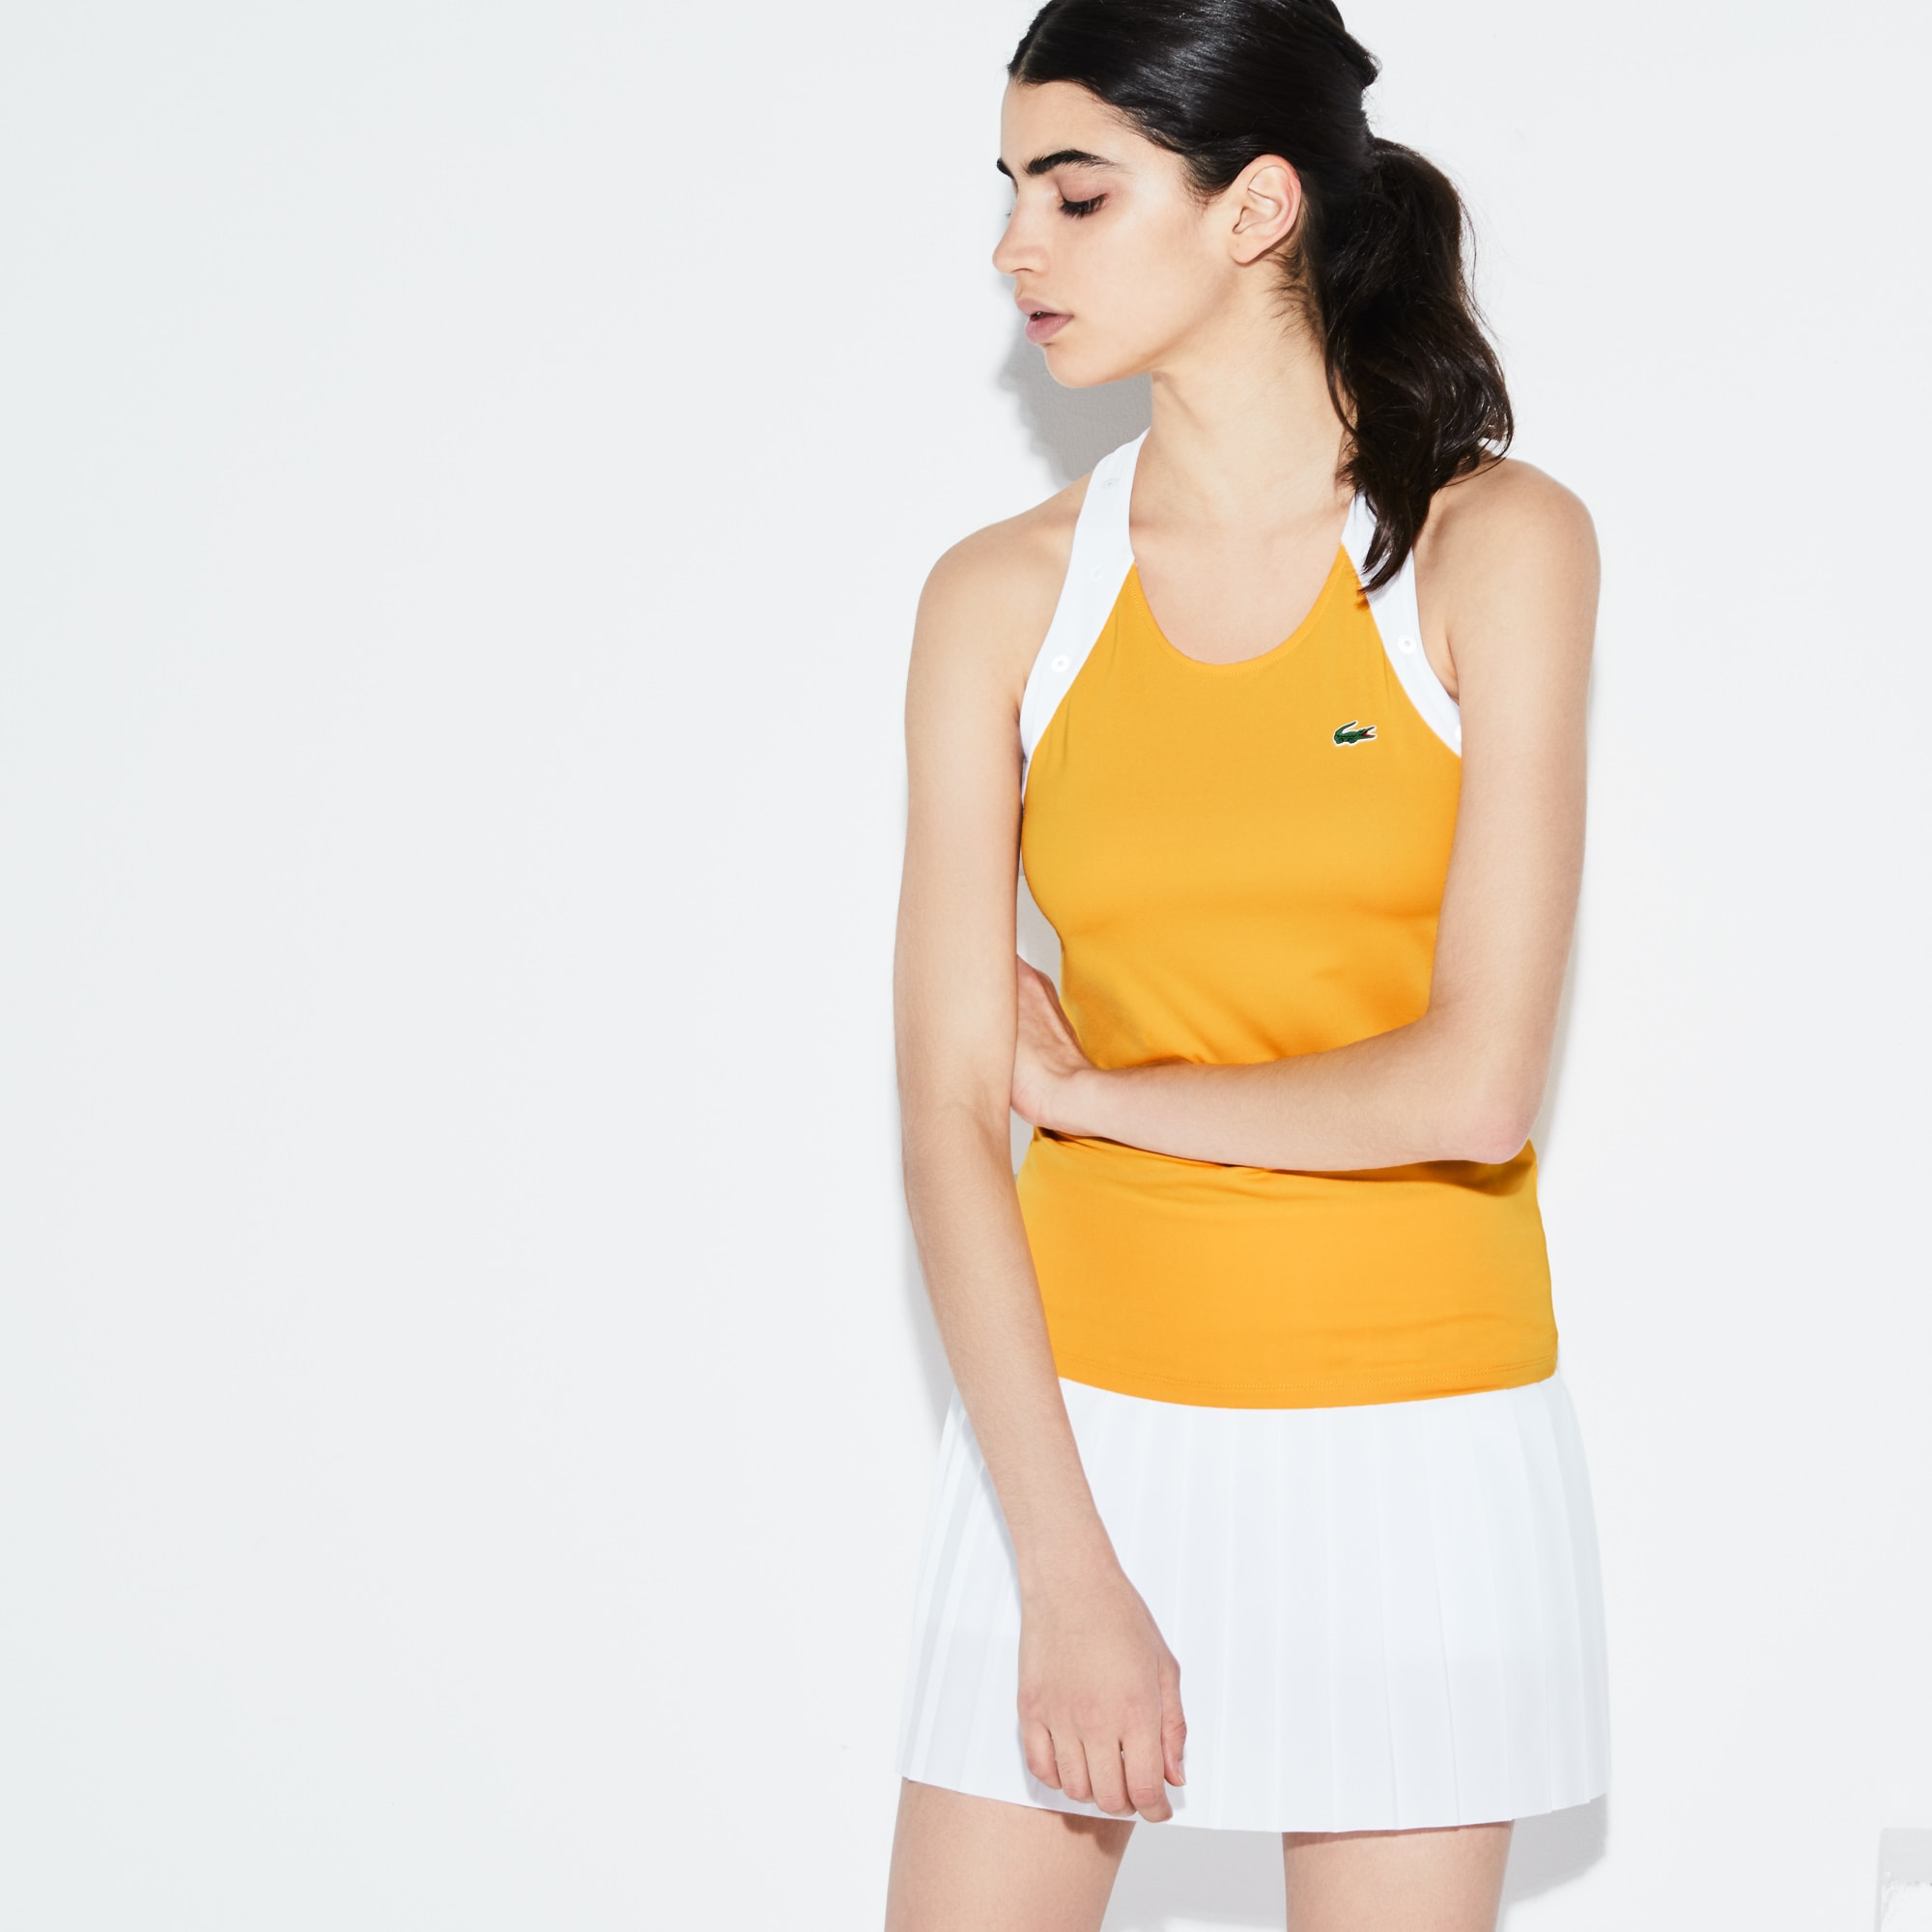 Women's SPORT Racerback Tennis Tank Top